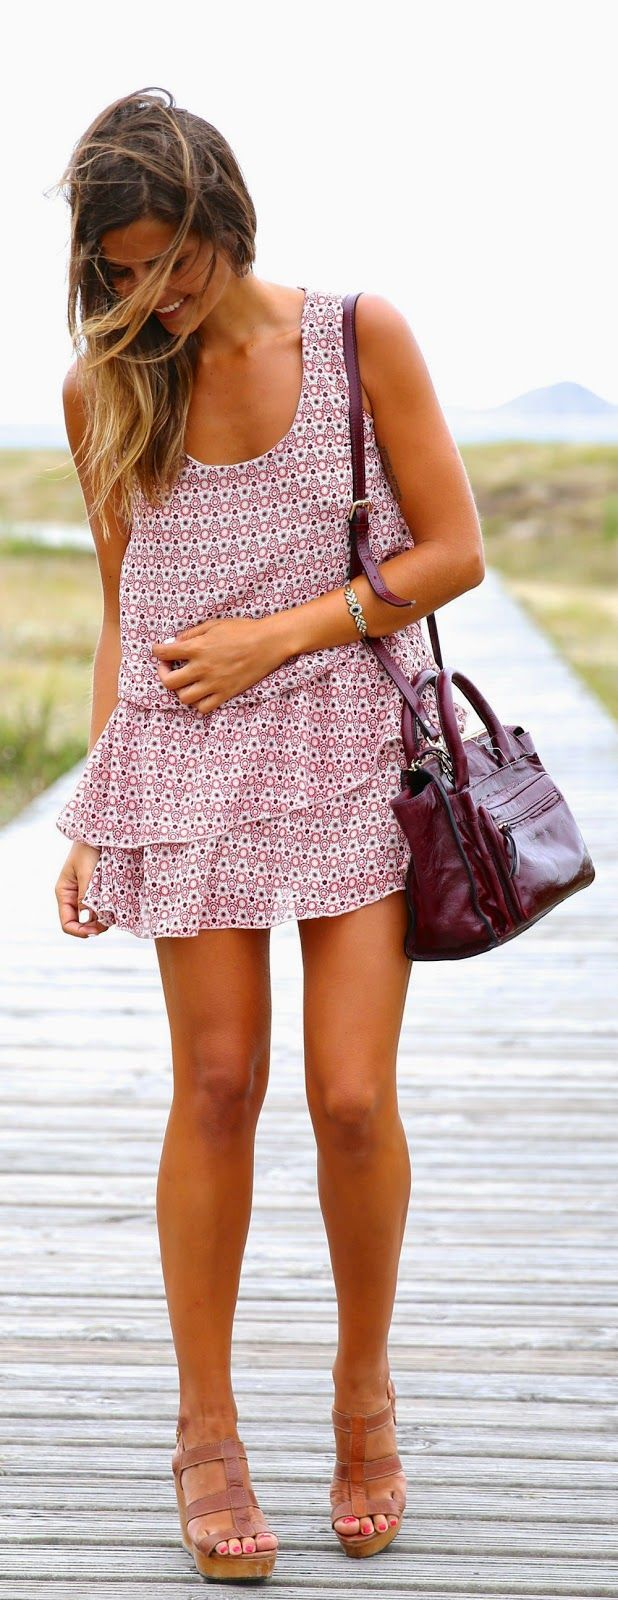 I really want to find a dress like this to wear to work with a sweater, or just to wear